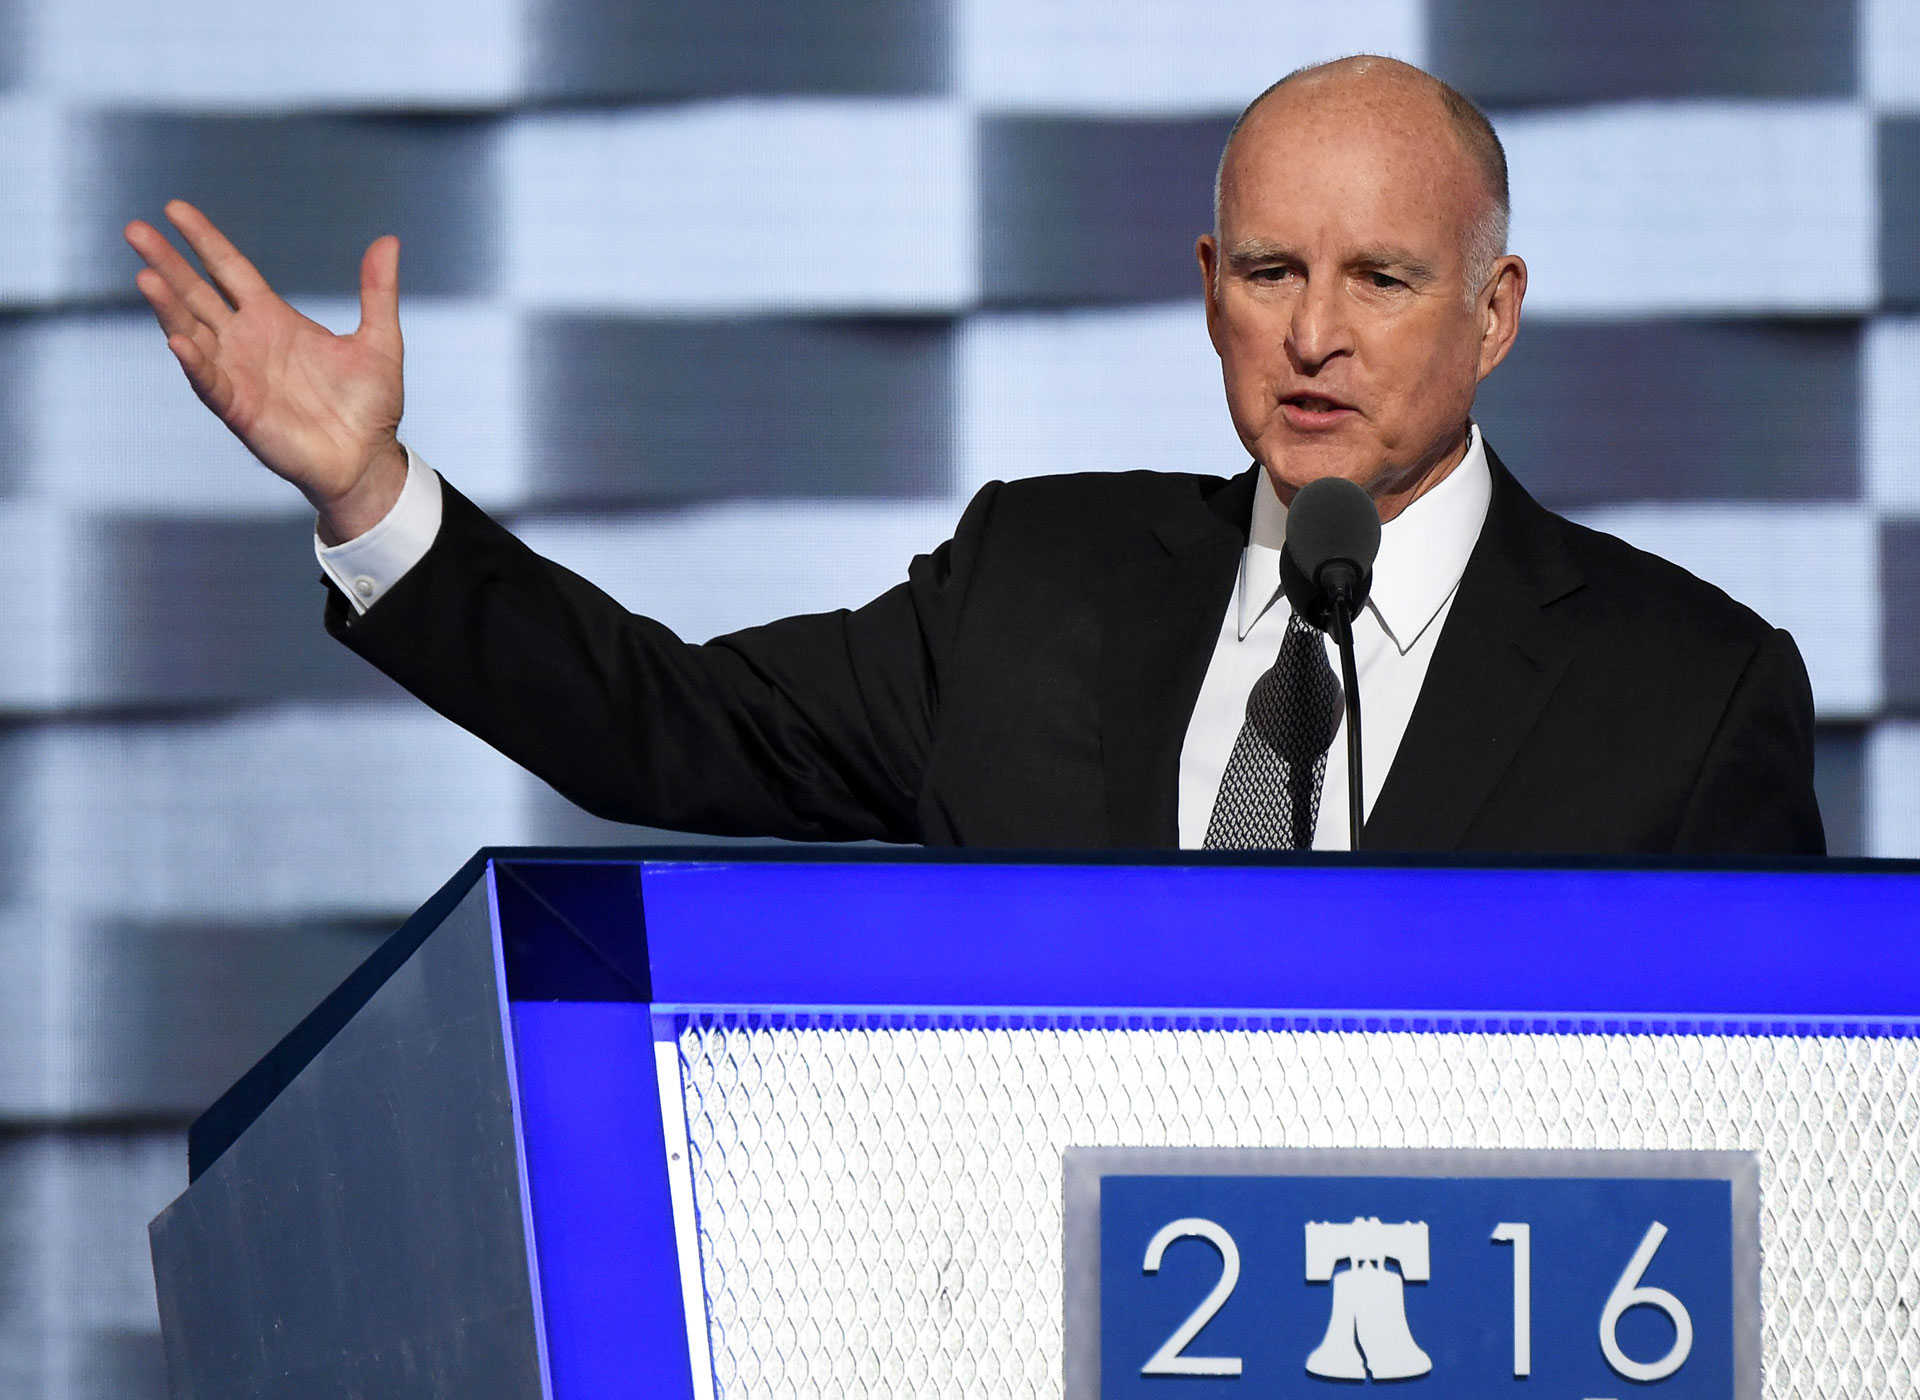 Gov. Jerry Brown speaks during day three of the Democratic National Convention in Philadelphia on July 27, 2016.